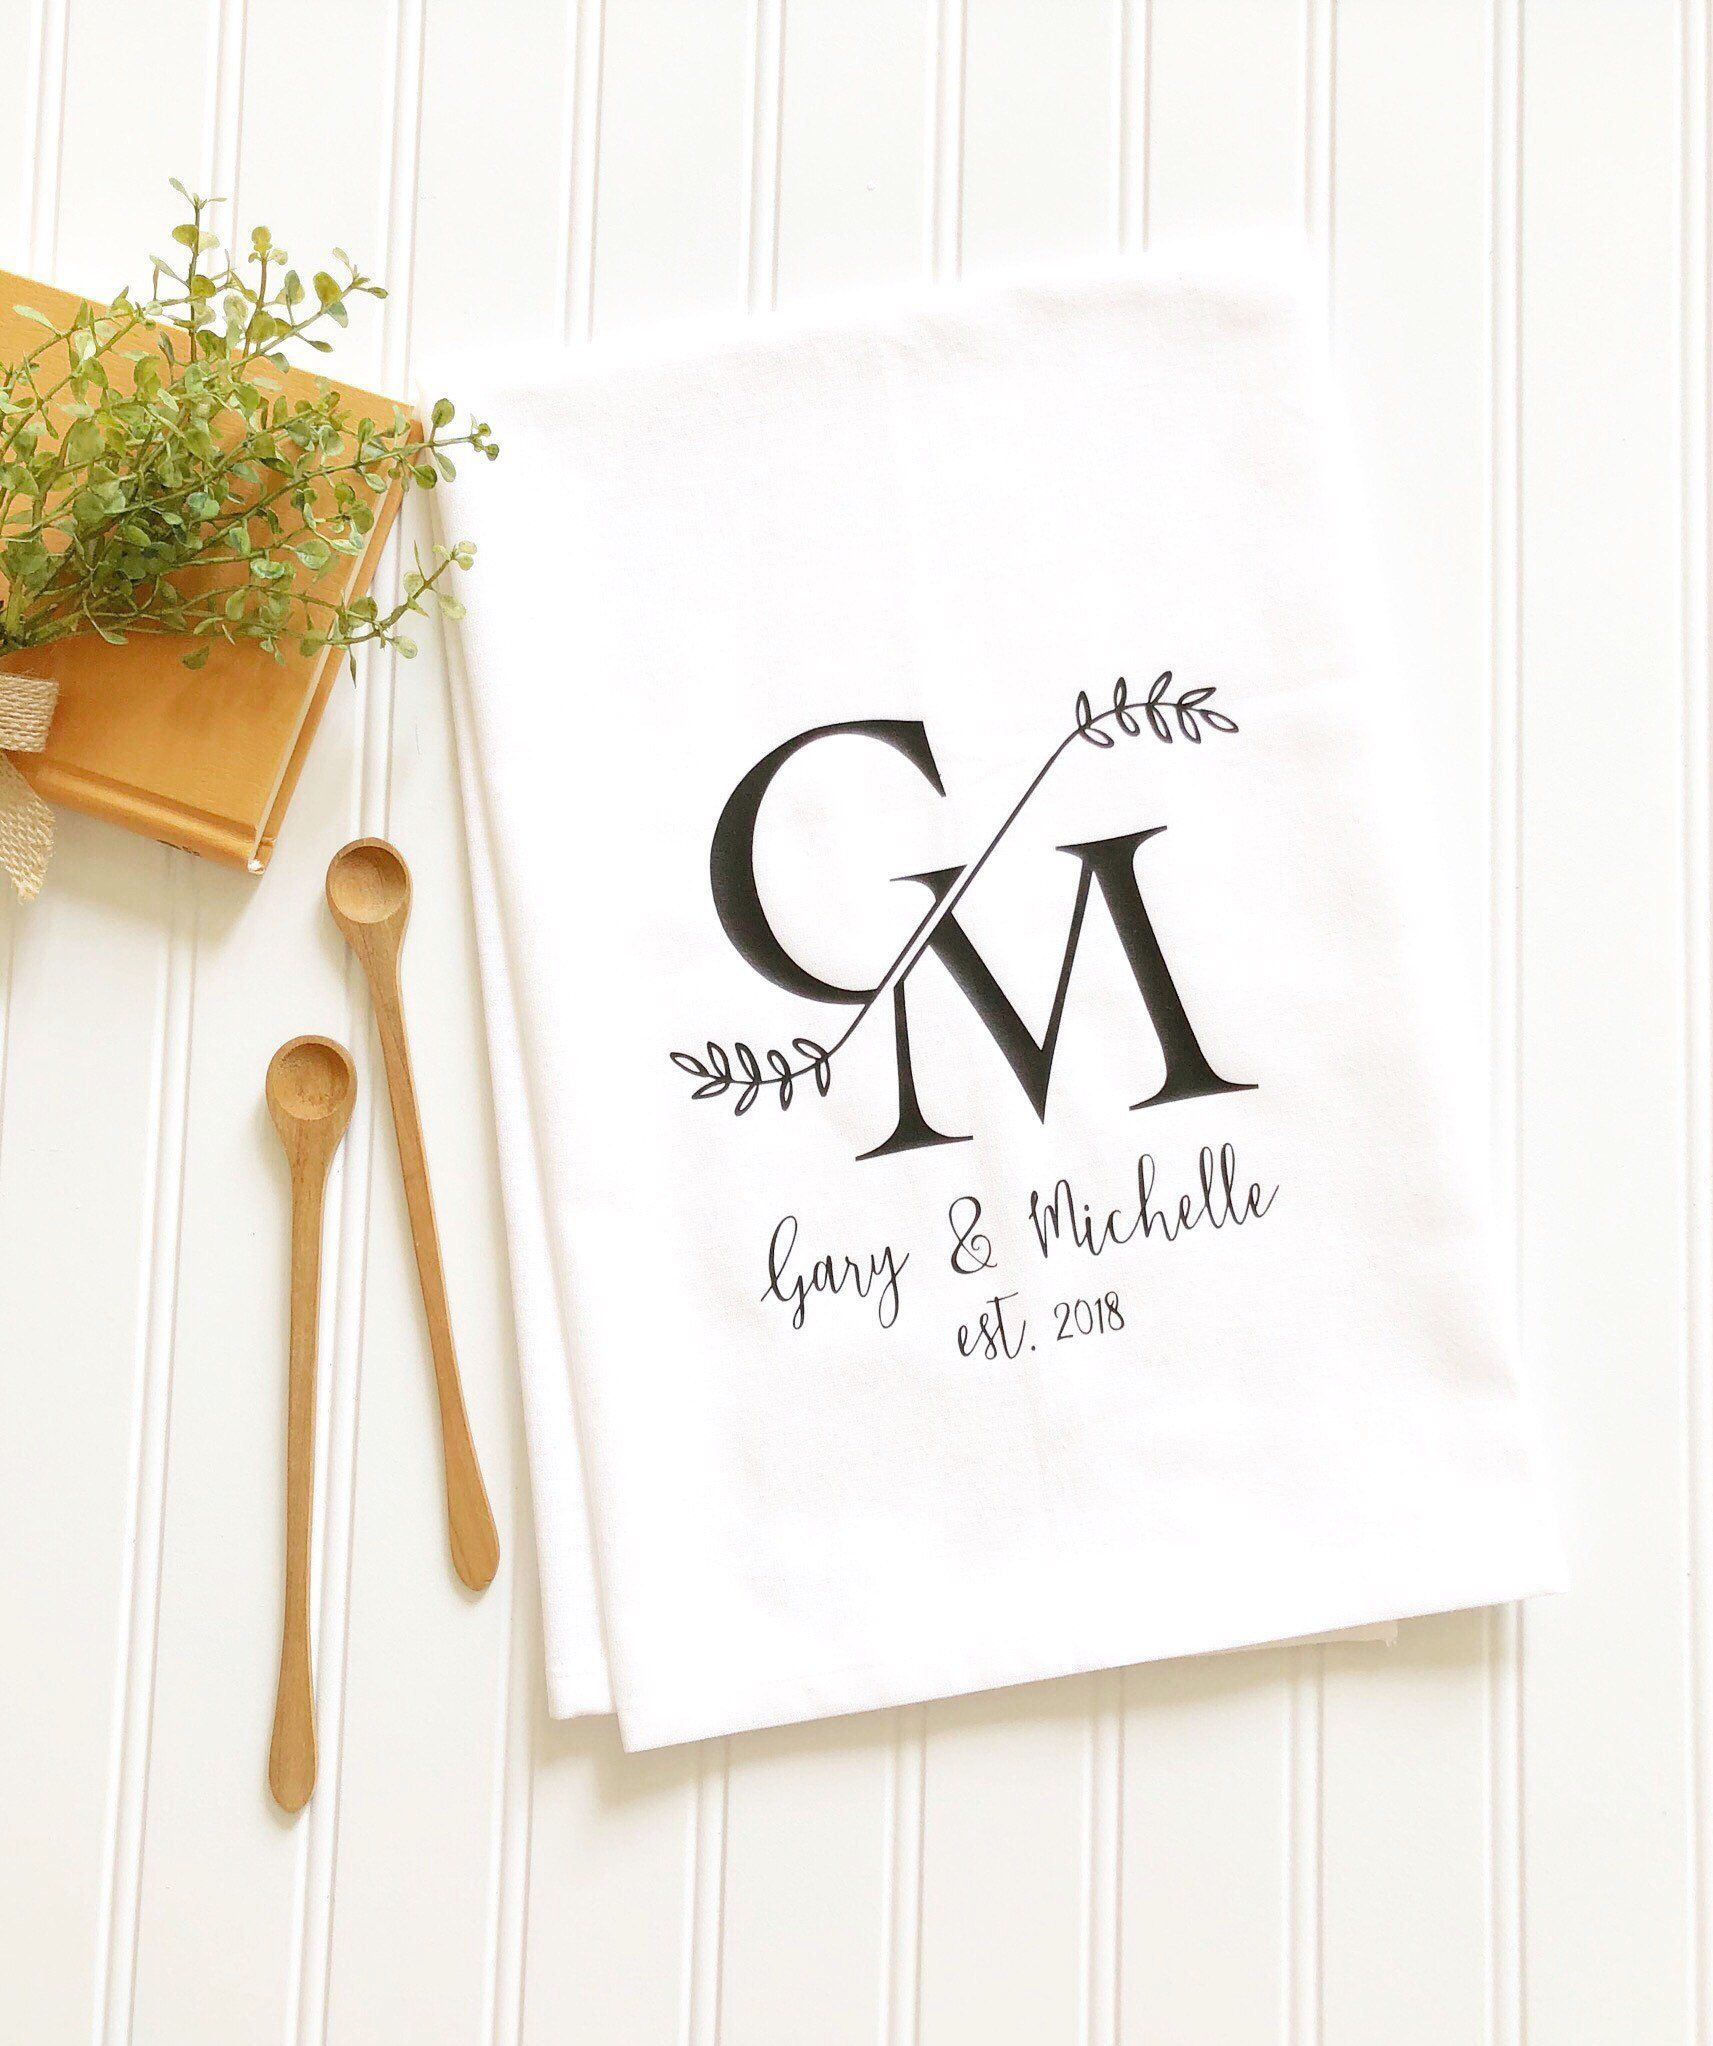 Embroidered Towels For Wedding Gift: Wedding Tea Towel Personalized Tea Towel Gift For